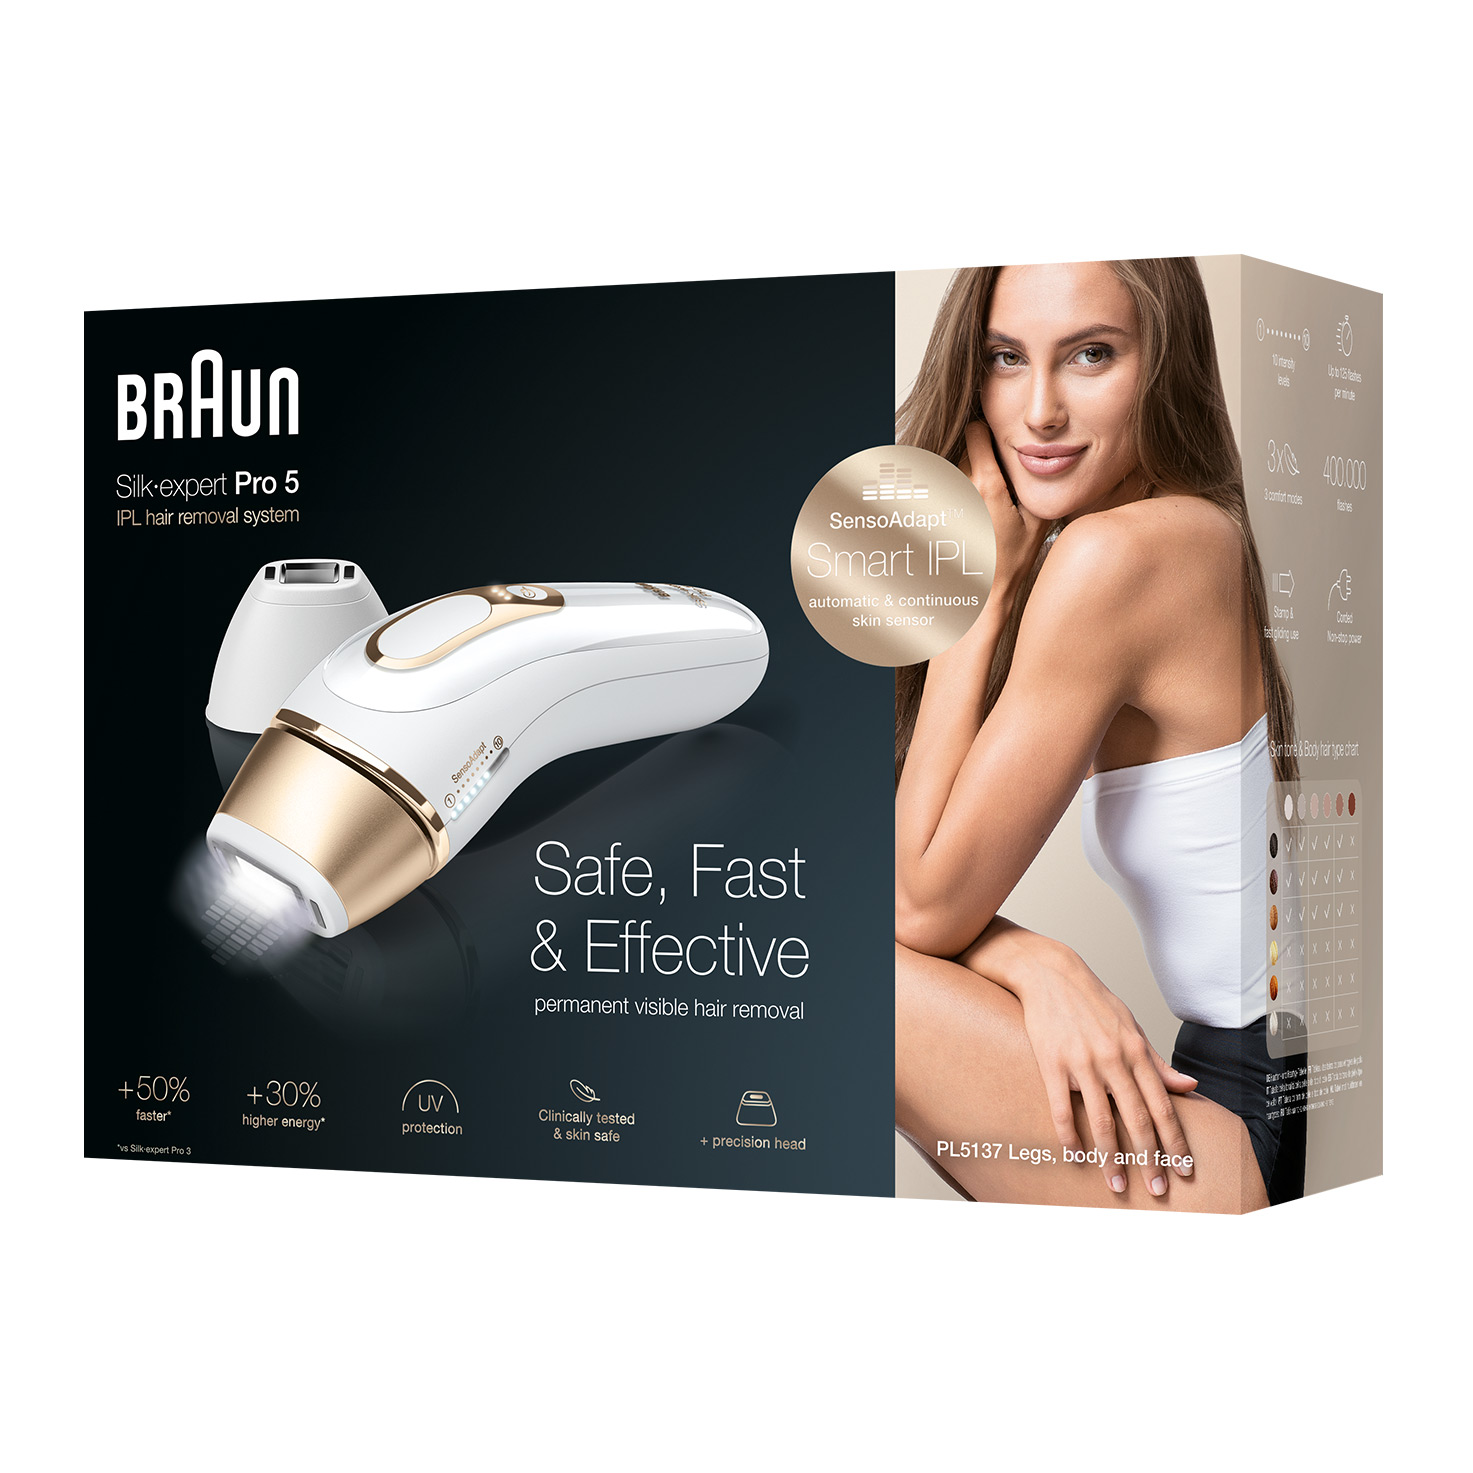 Braun Silk-expert Pro 5 PL5137 - Packaging